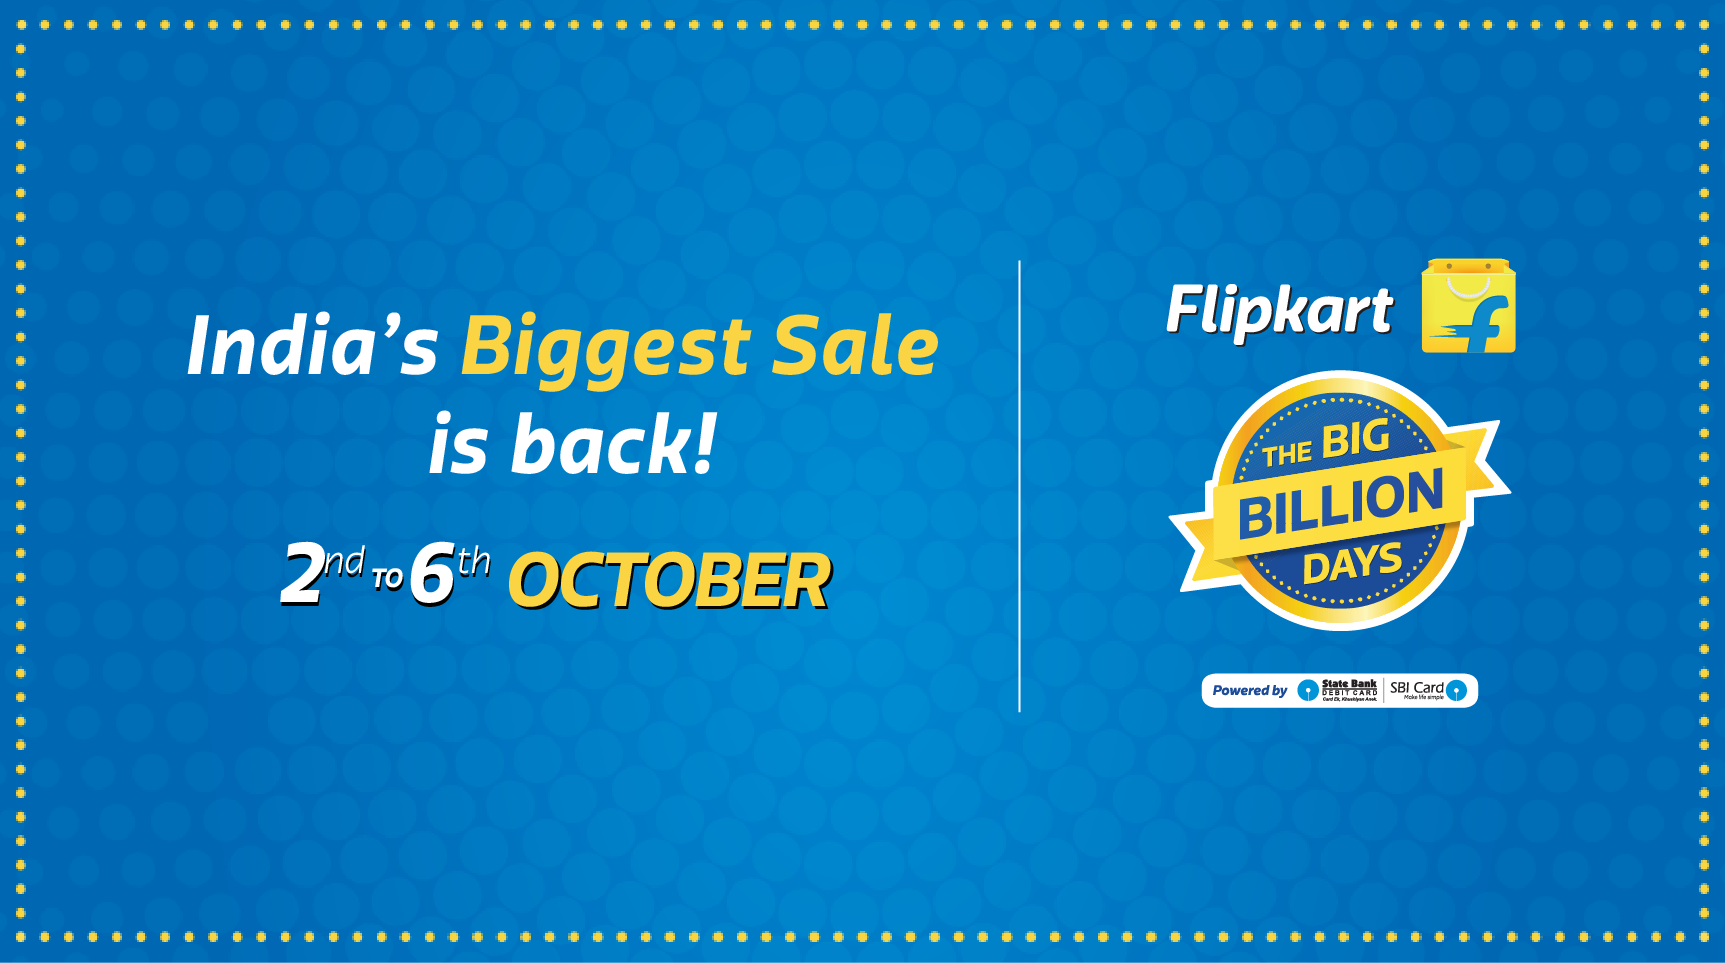 flipkart-big-billion-day-2016-sale-offers